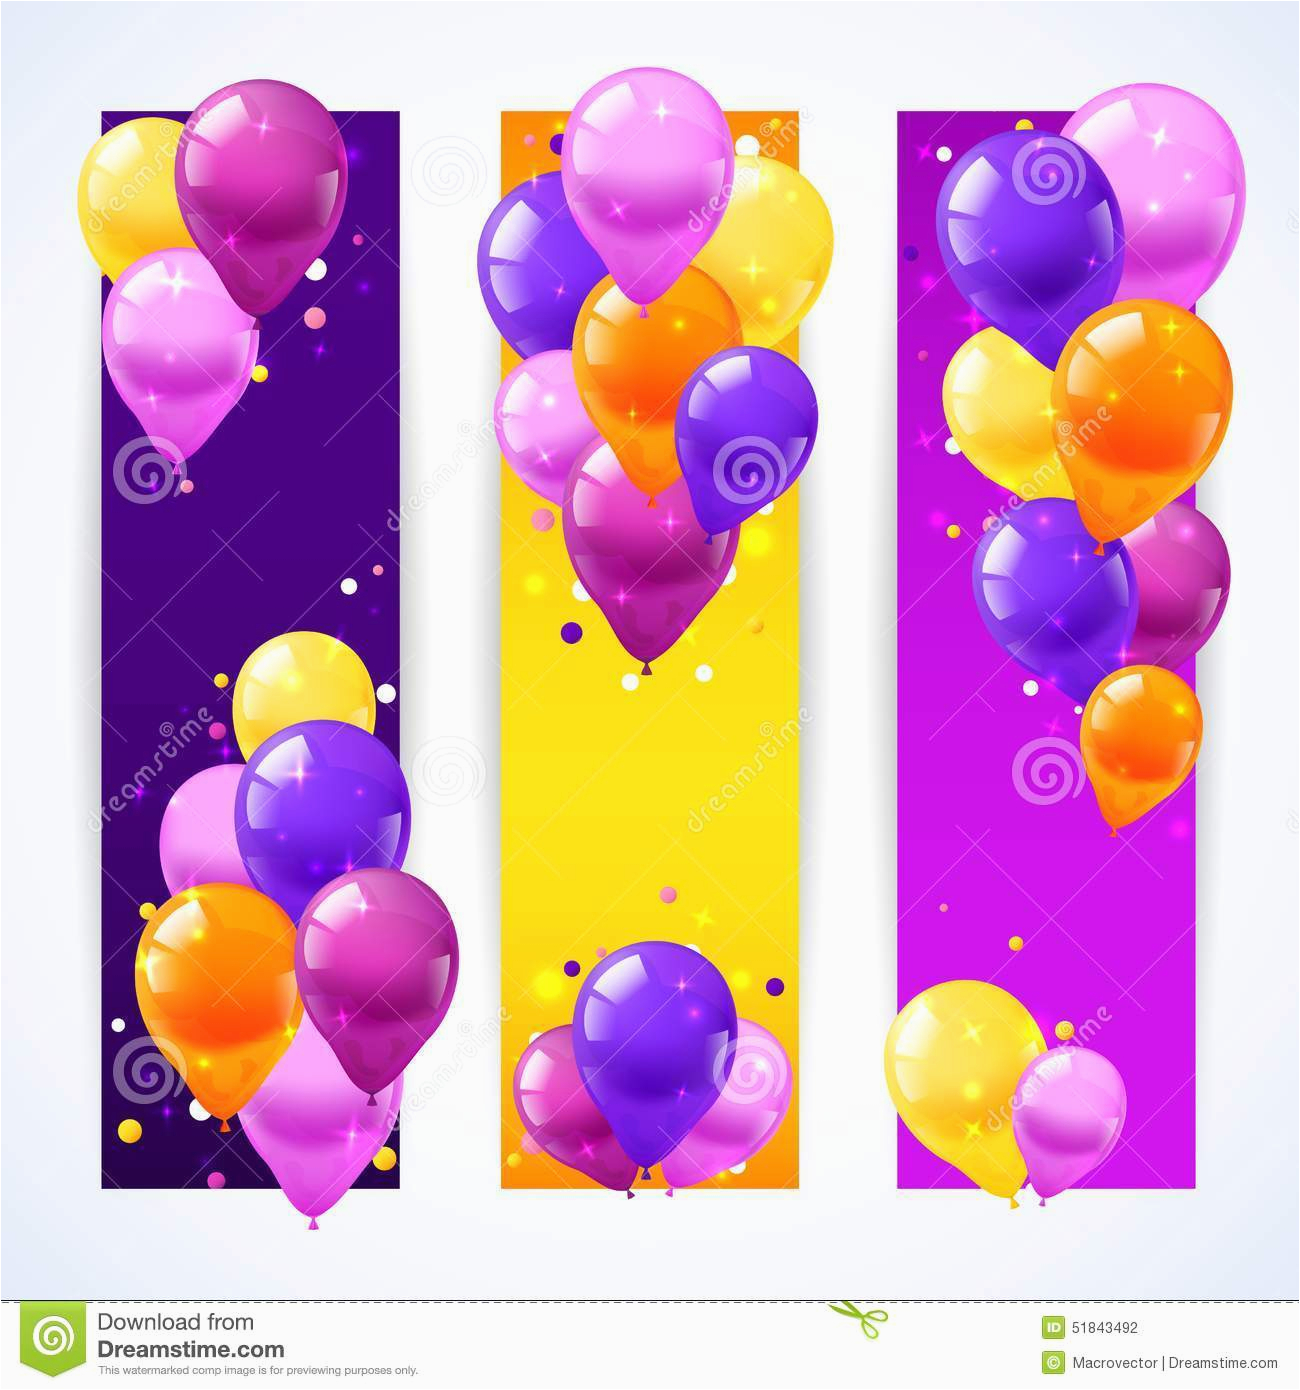 stock illustration colorful balloons banners vertical festival birthday set realistic air isolated vector illustration image51843492